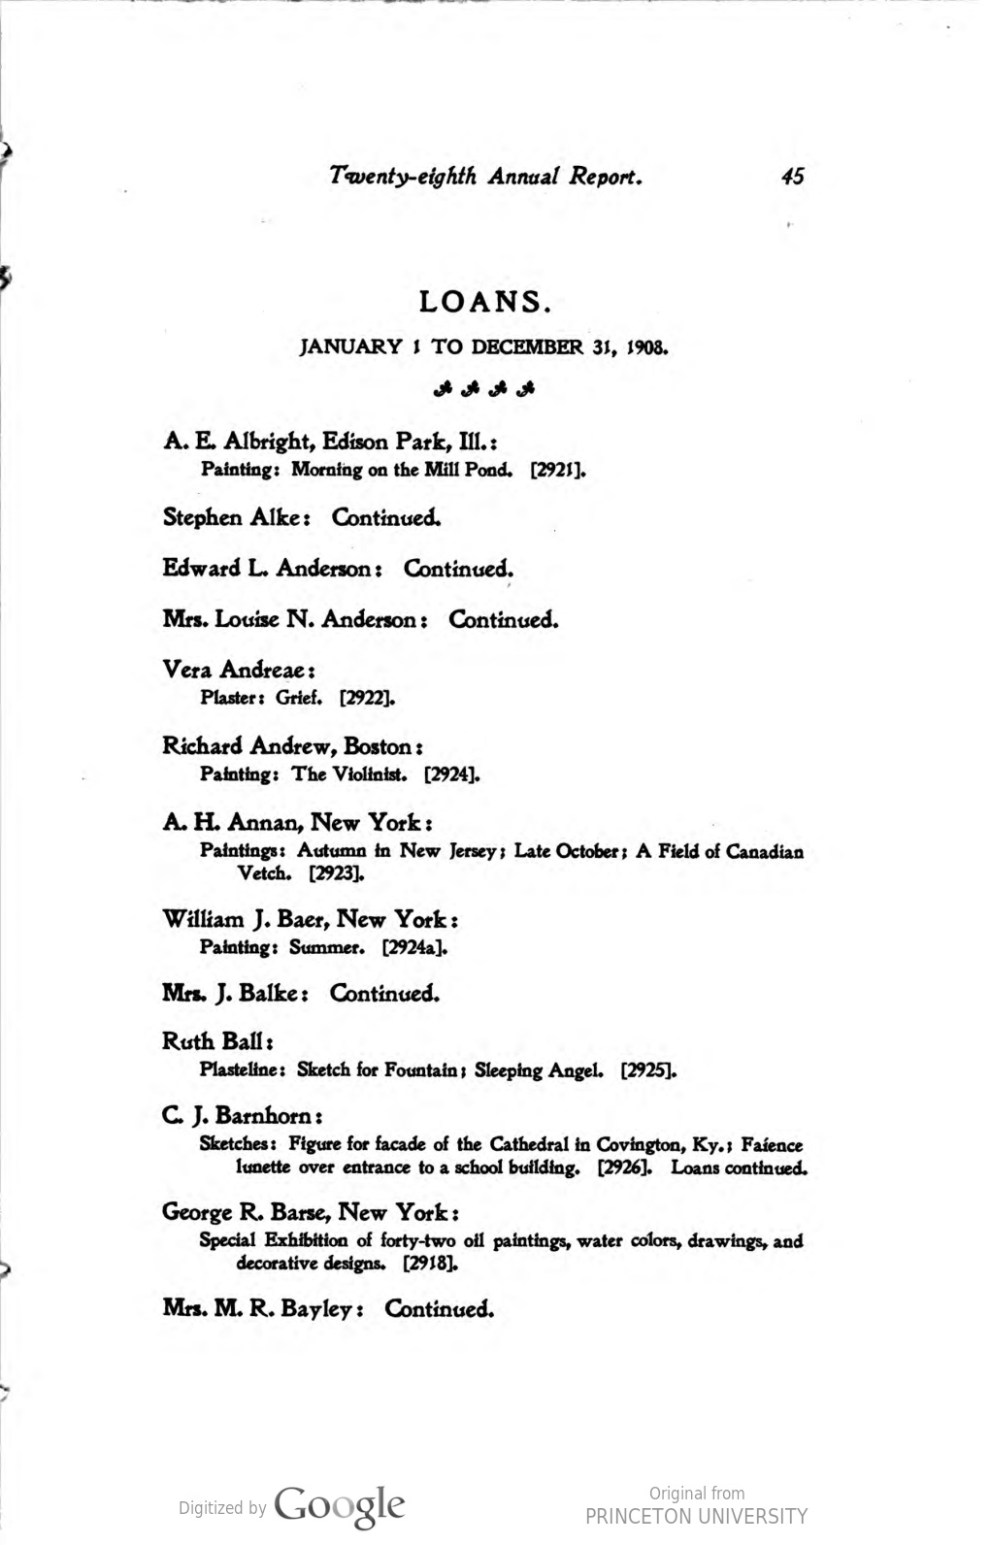 """Cincinnati Museum Association, Cincinnati, OH, """"Twenty-eighth annual report : for the year ending December 31, 1908"""", 1908, pages 45-46, not illustrated."""